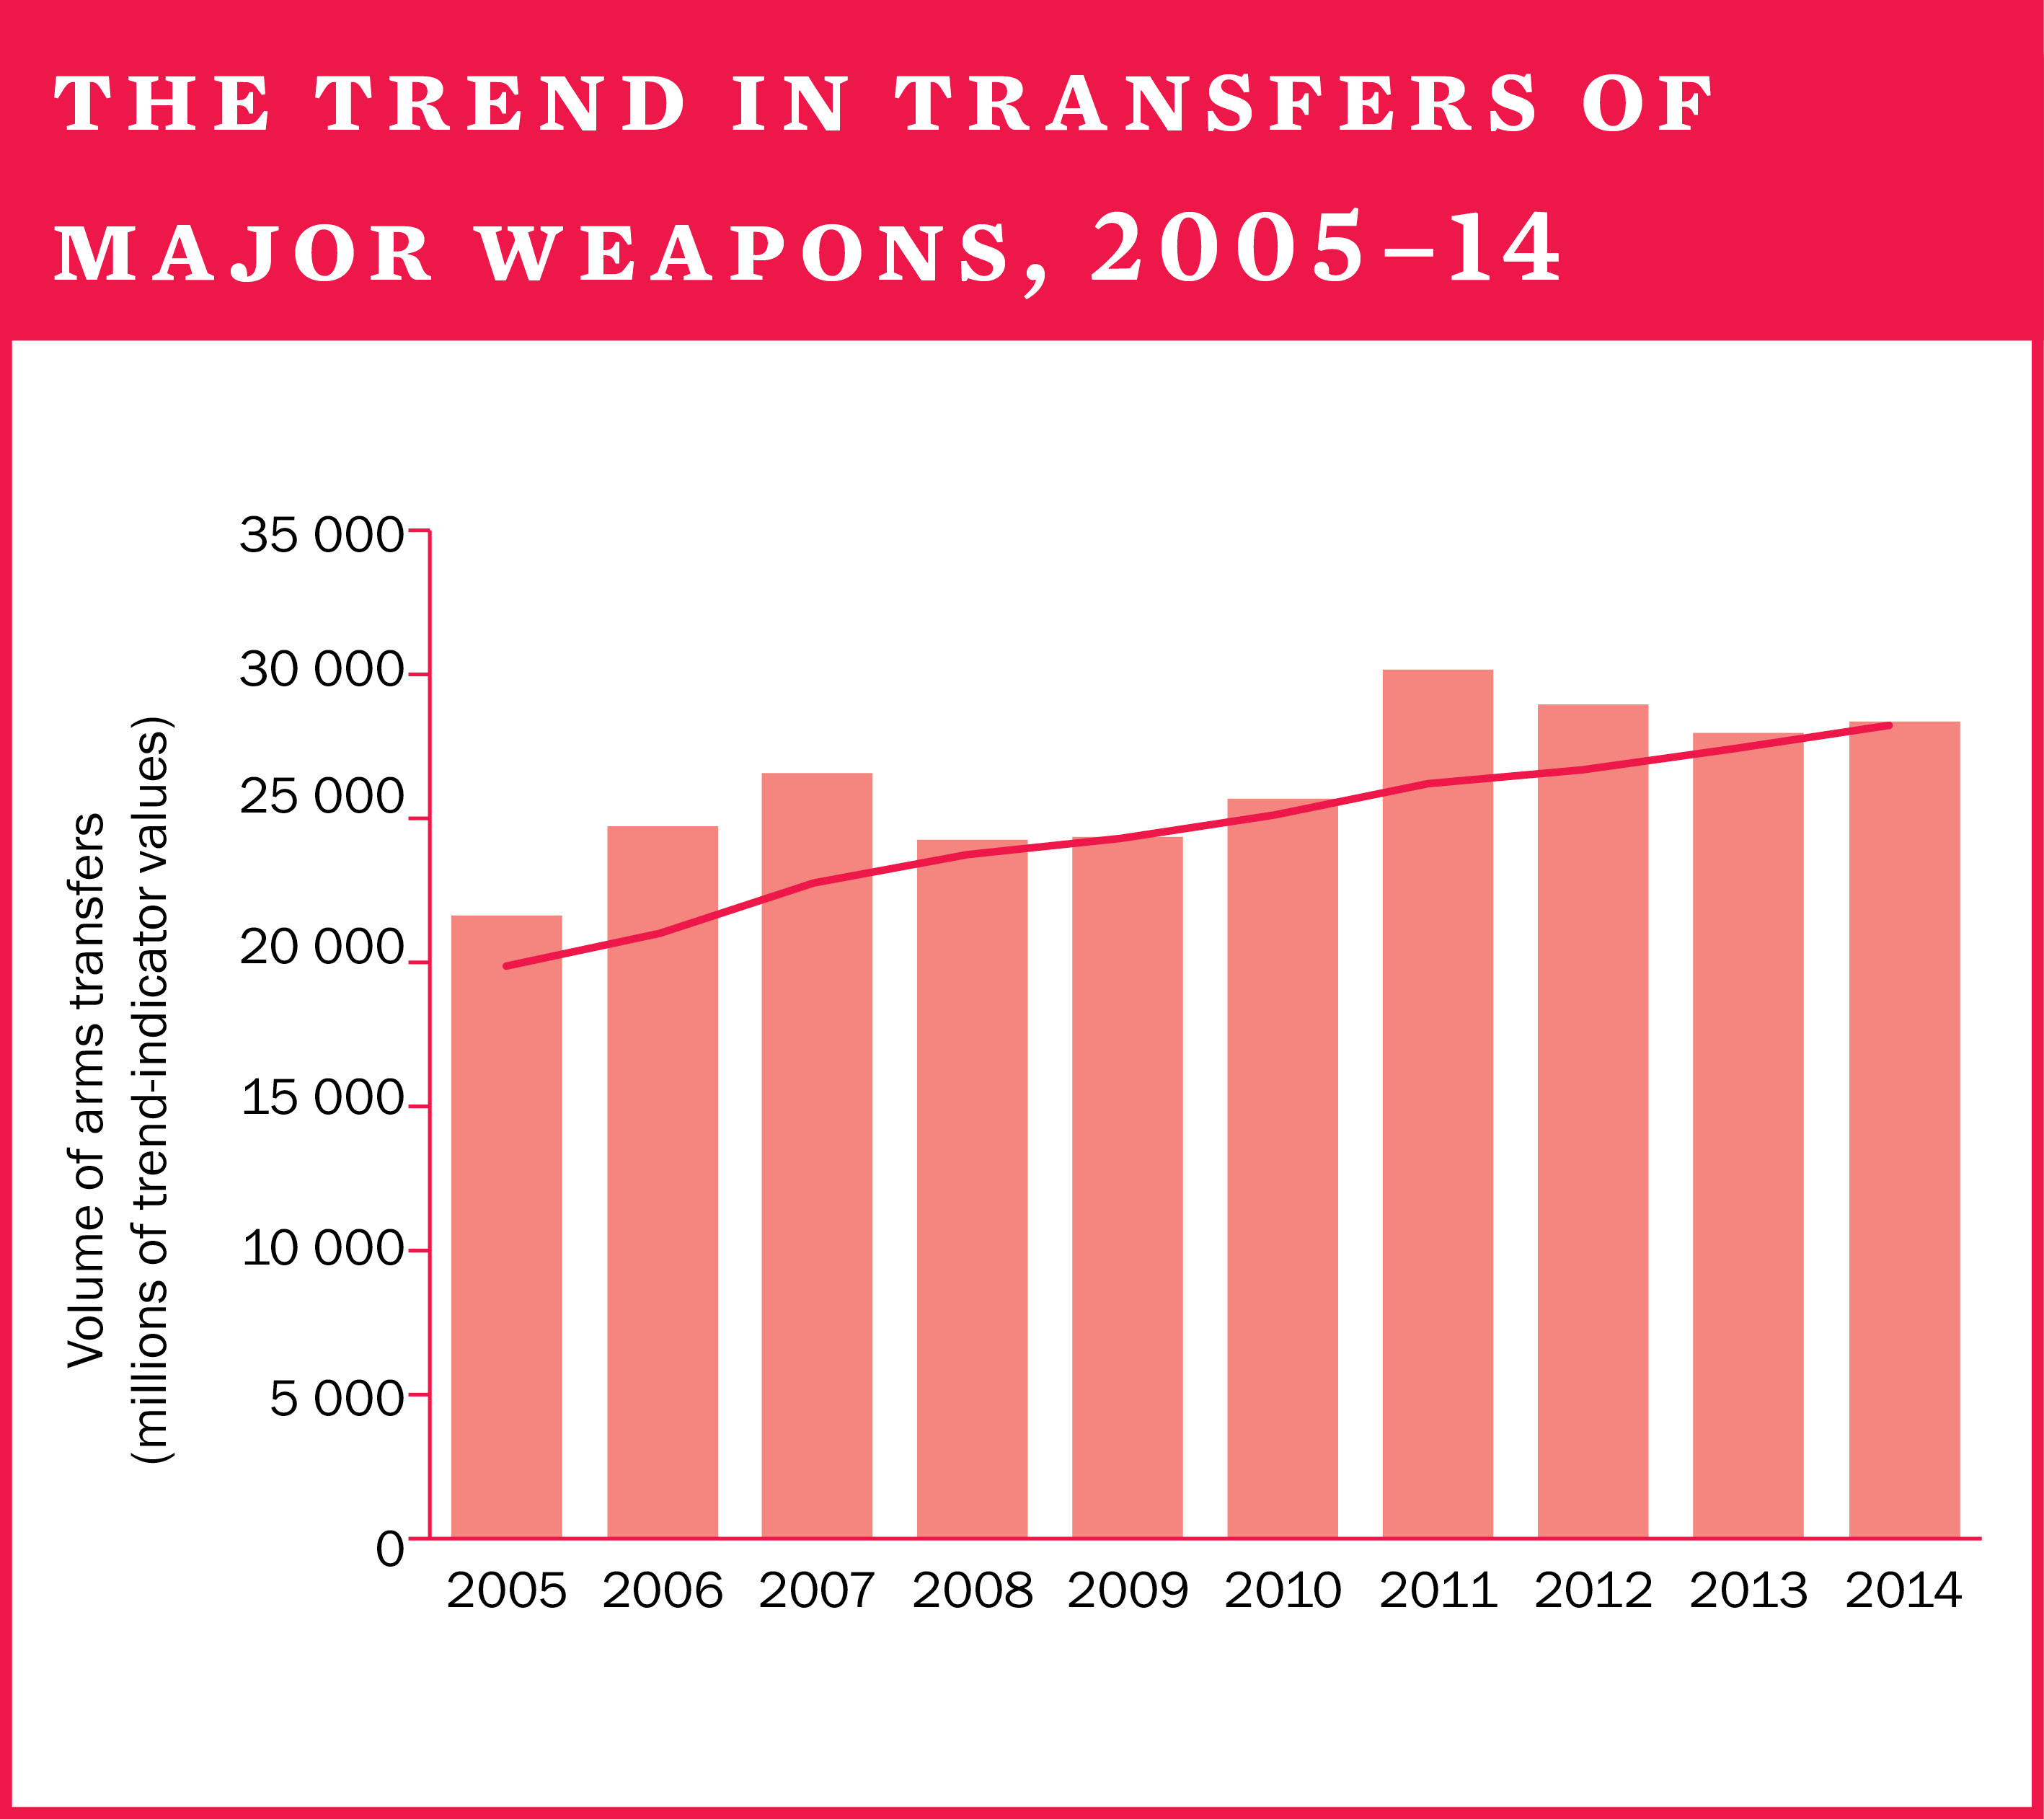 The trend in transfers of major weapons, 2005–14